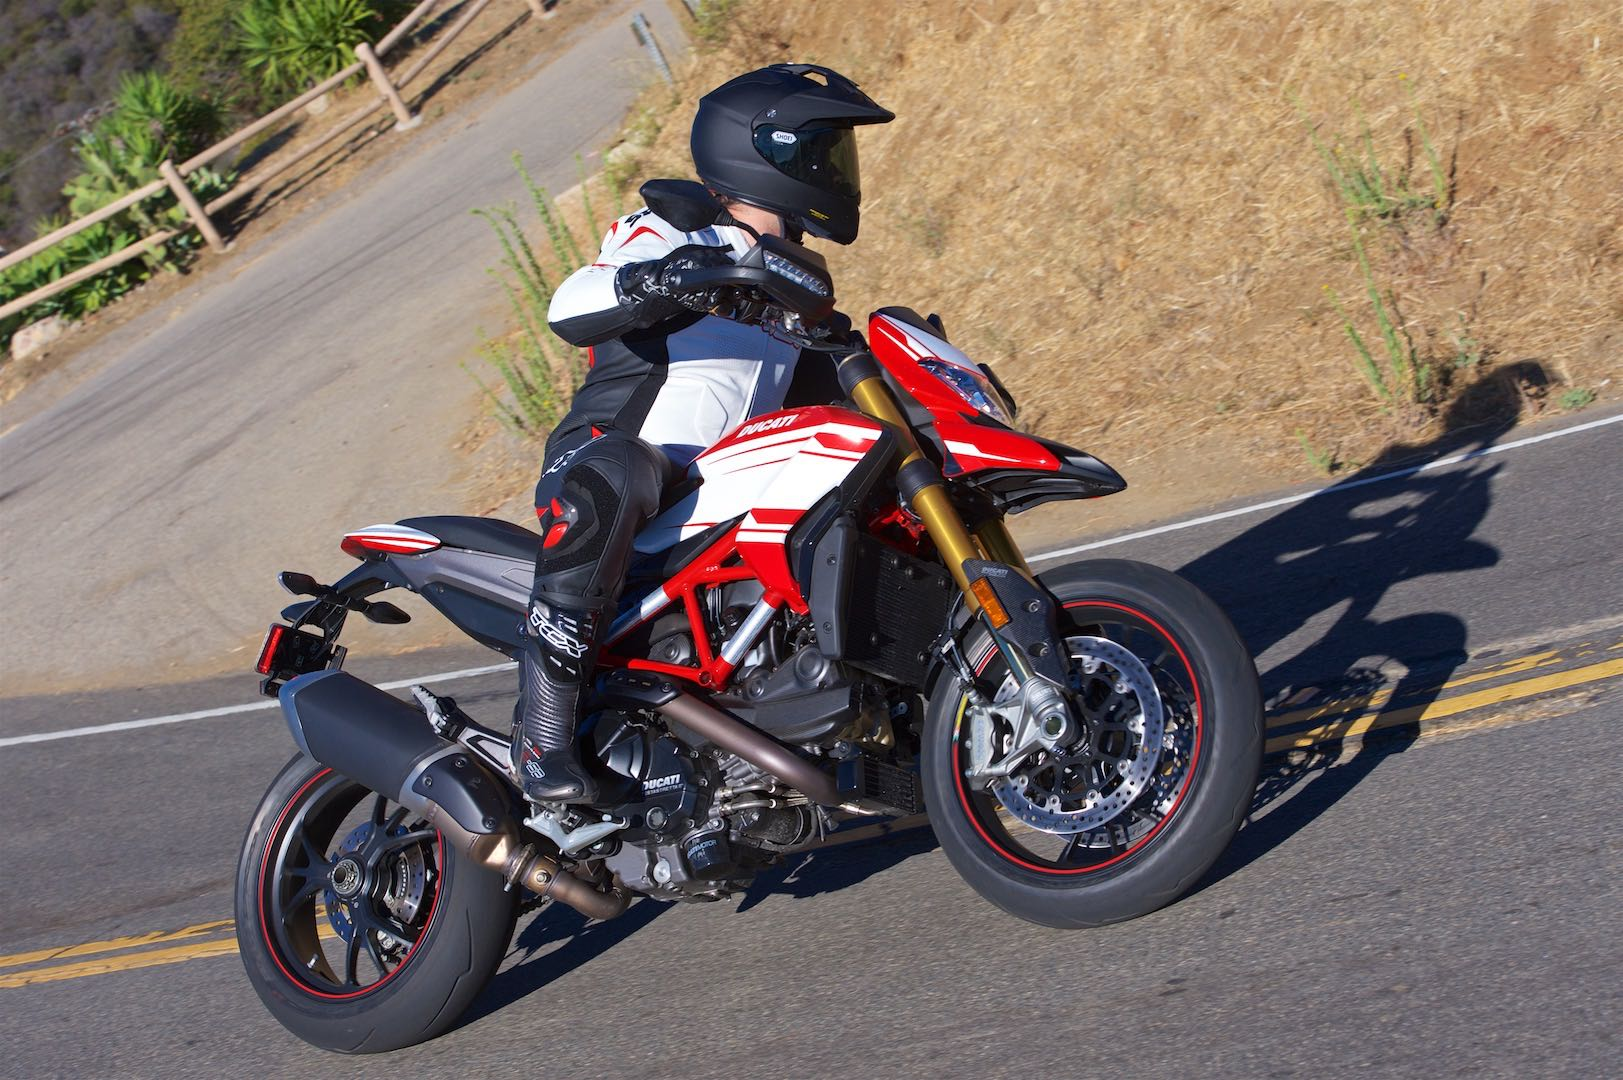 2016 Ducati Hypermotard 939 SP lean